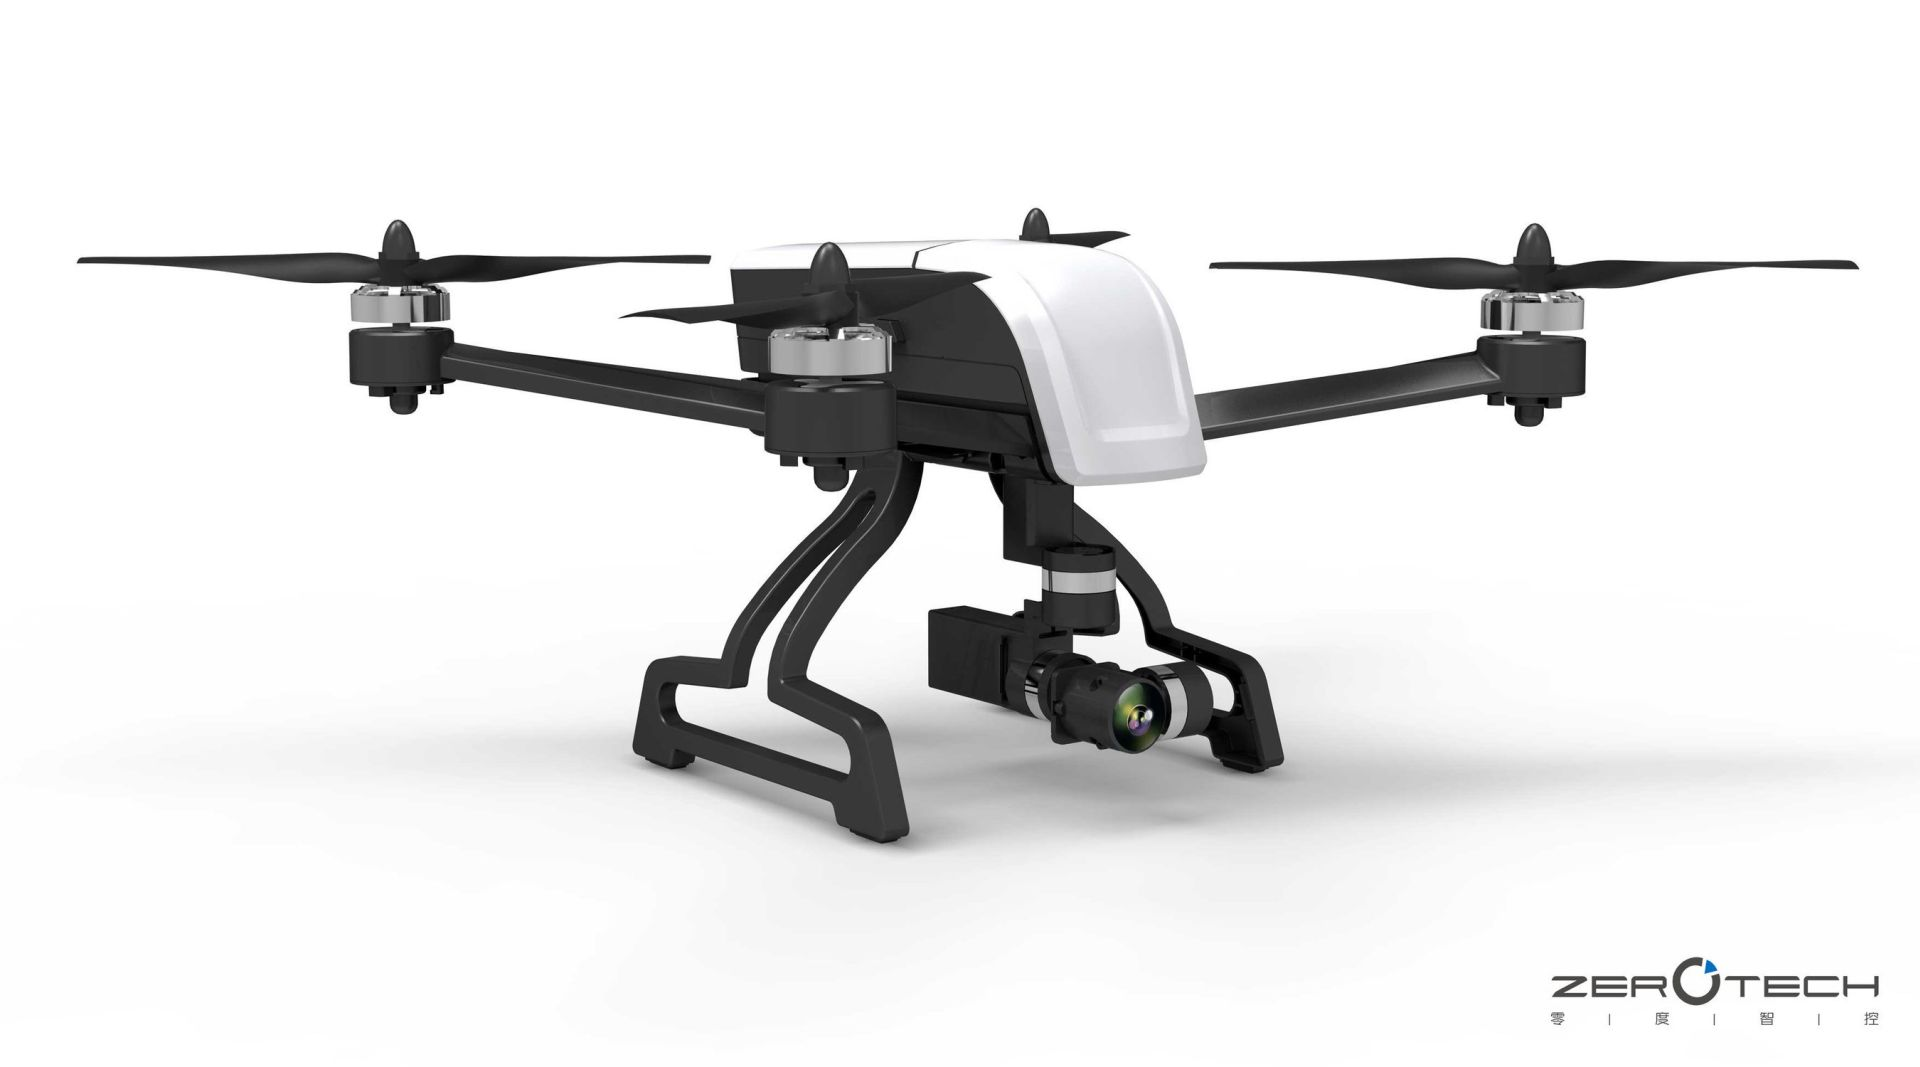 rc surveillance drone with Zerotech Debuts The Most  Pact 4k Drone That Carries Mechanical Stabilization Gimbal 1779 on Watch also File Aurora x Plane 3 moreover Nuevos Estudios Evaluaran El Riesgo De La Inteligencia Artificial together with Zerotech Debuts The Most  pact 4k Drone That Carries Mechanical Stabilization Gimbal 1779 furthermore Drone Clipart.